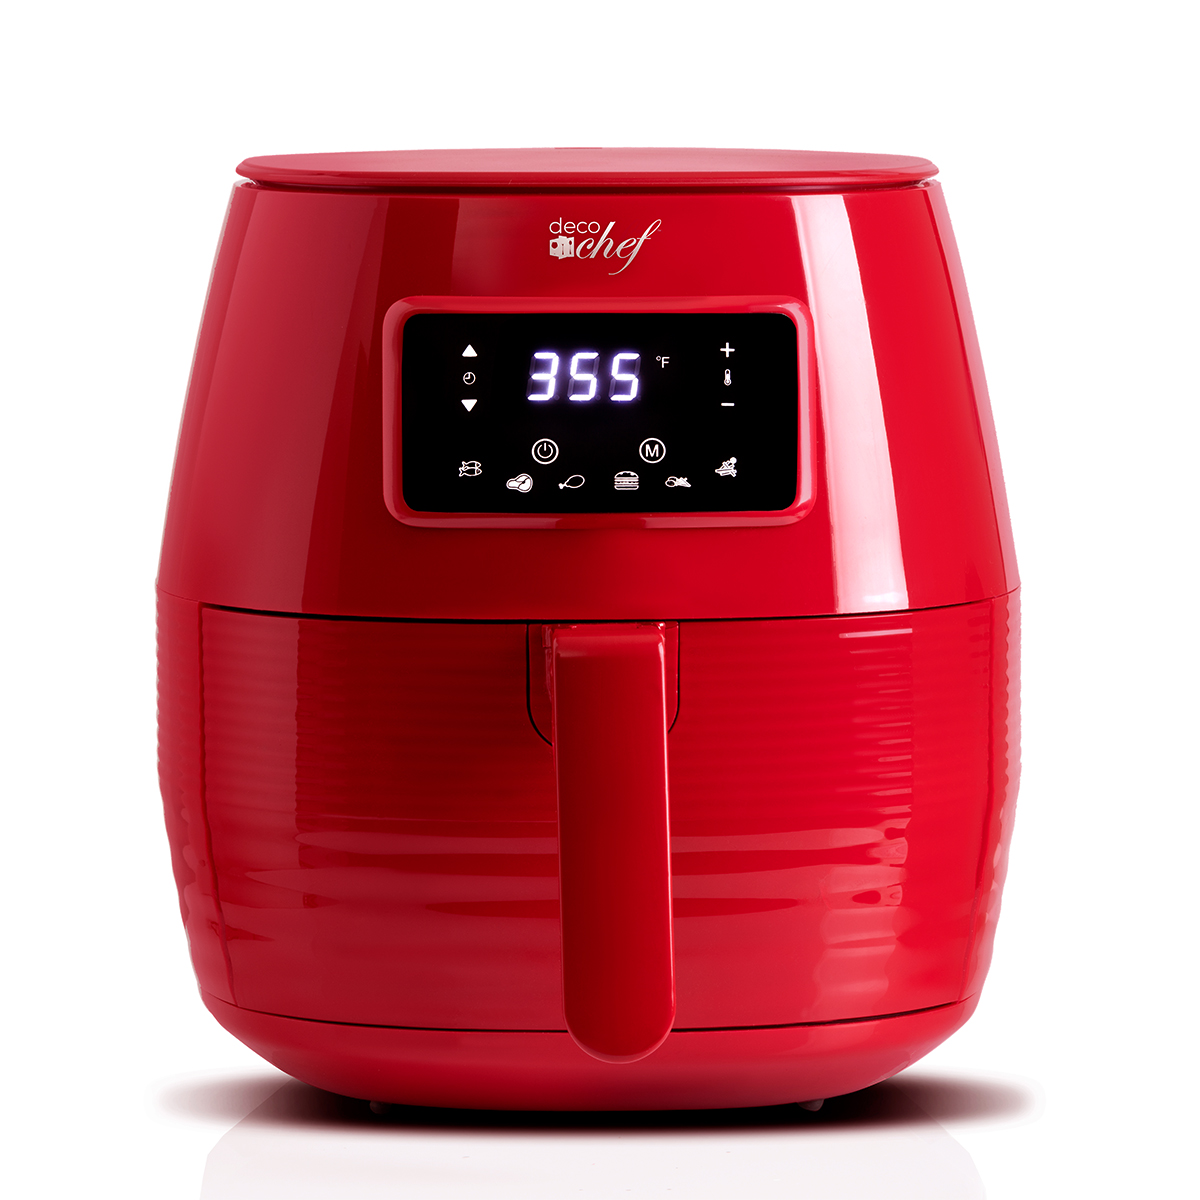 Deco-Chef-5-8QT-1400W-Digital-Electric-No-Oil-Air-Fryer-6-Cooking-Presets-Timer thumbnail 31